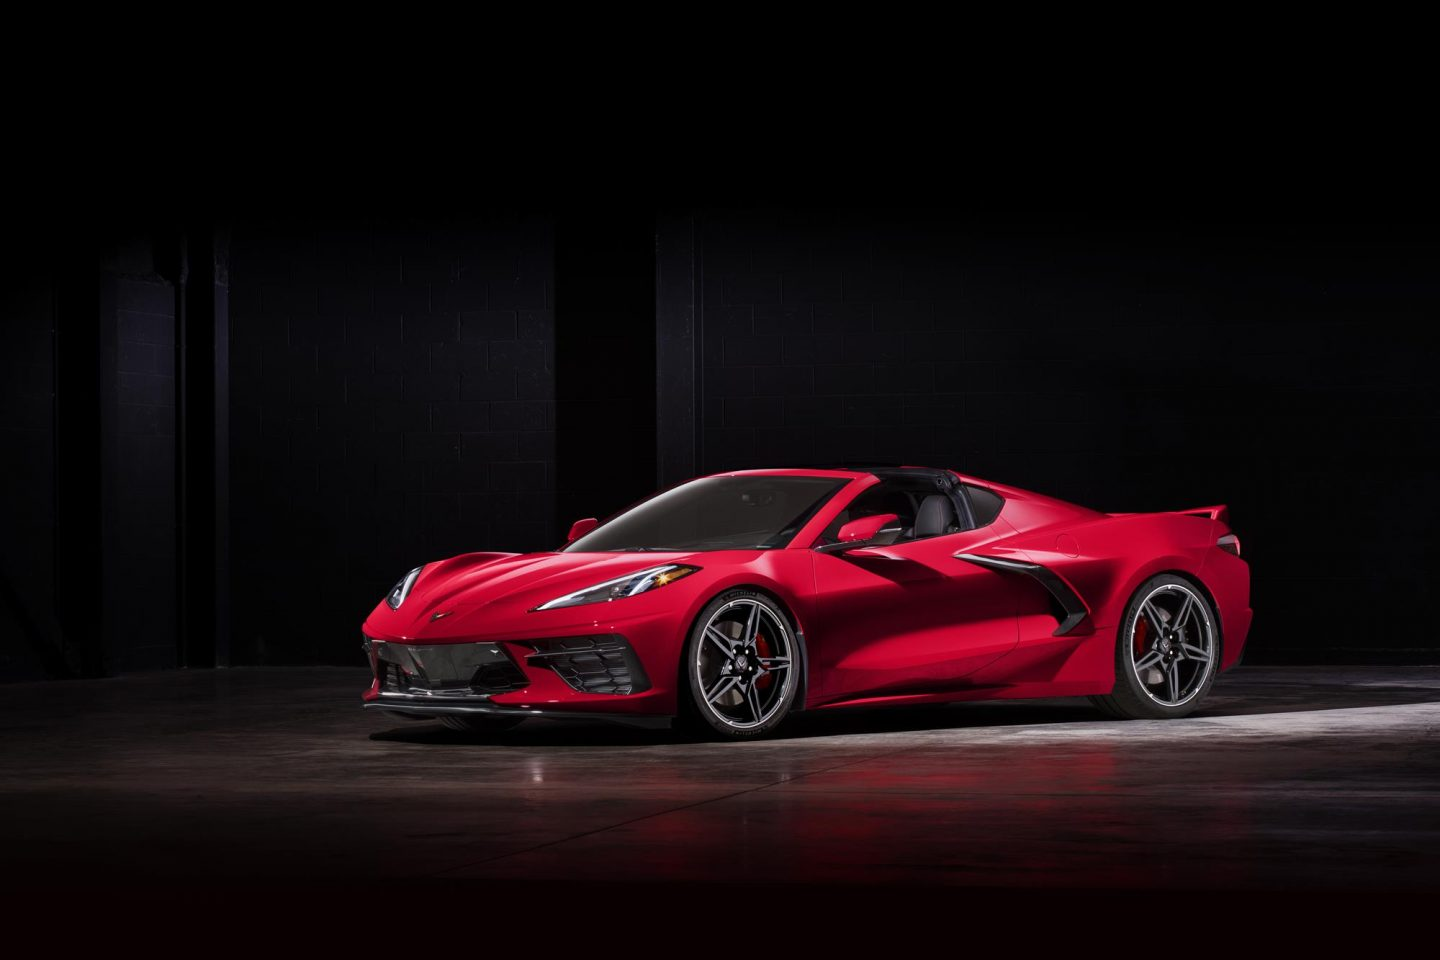 2020 Stingray revealed as first ever mid-engine Corvette ...